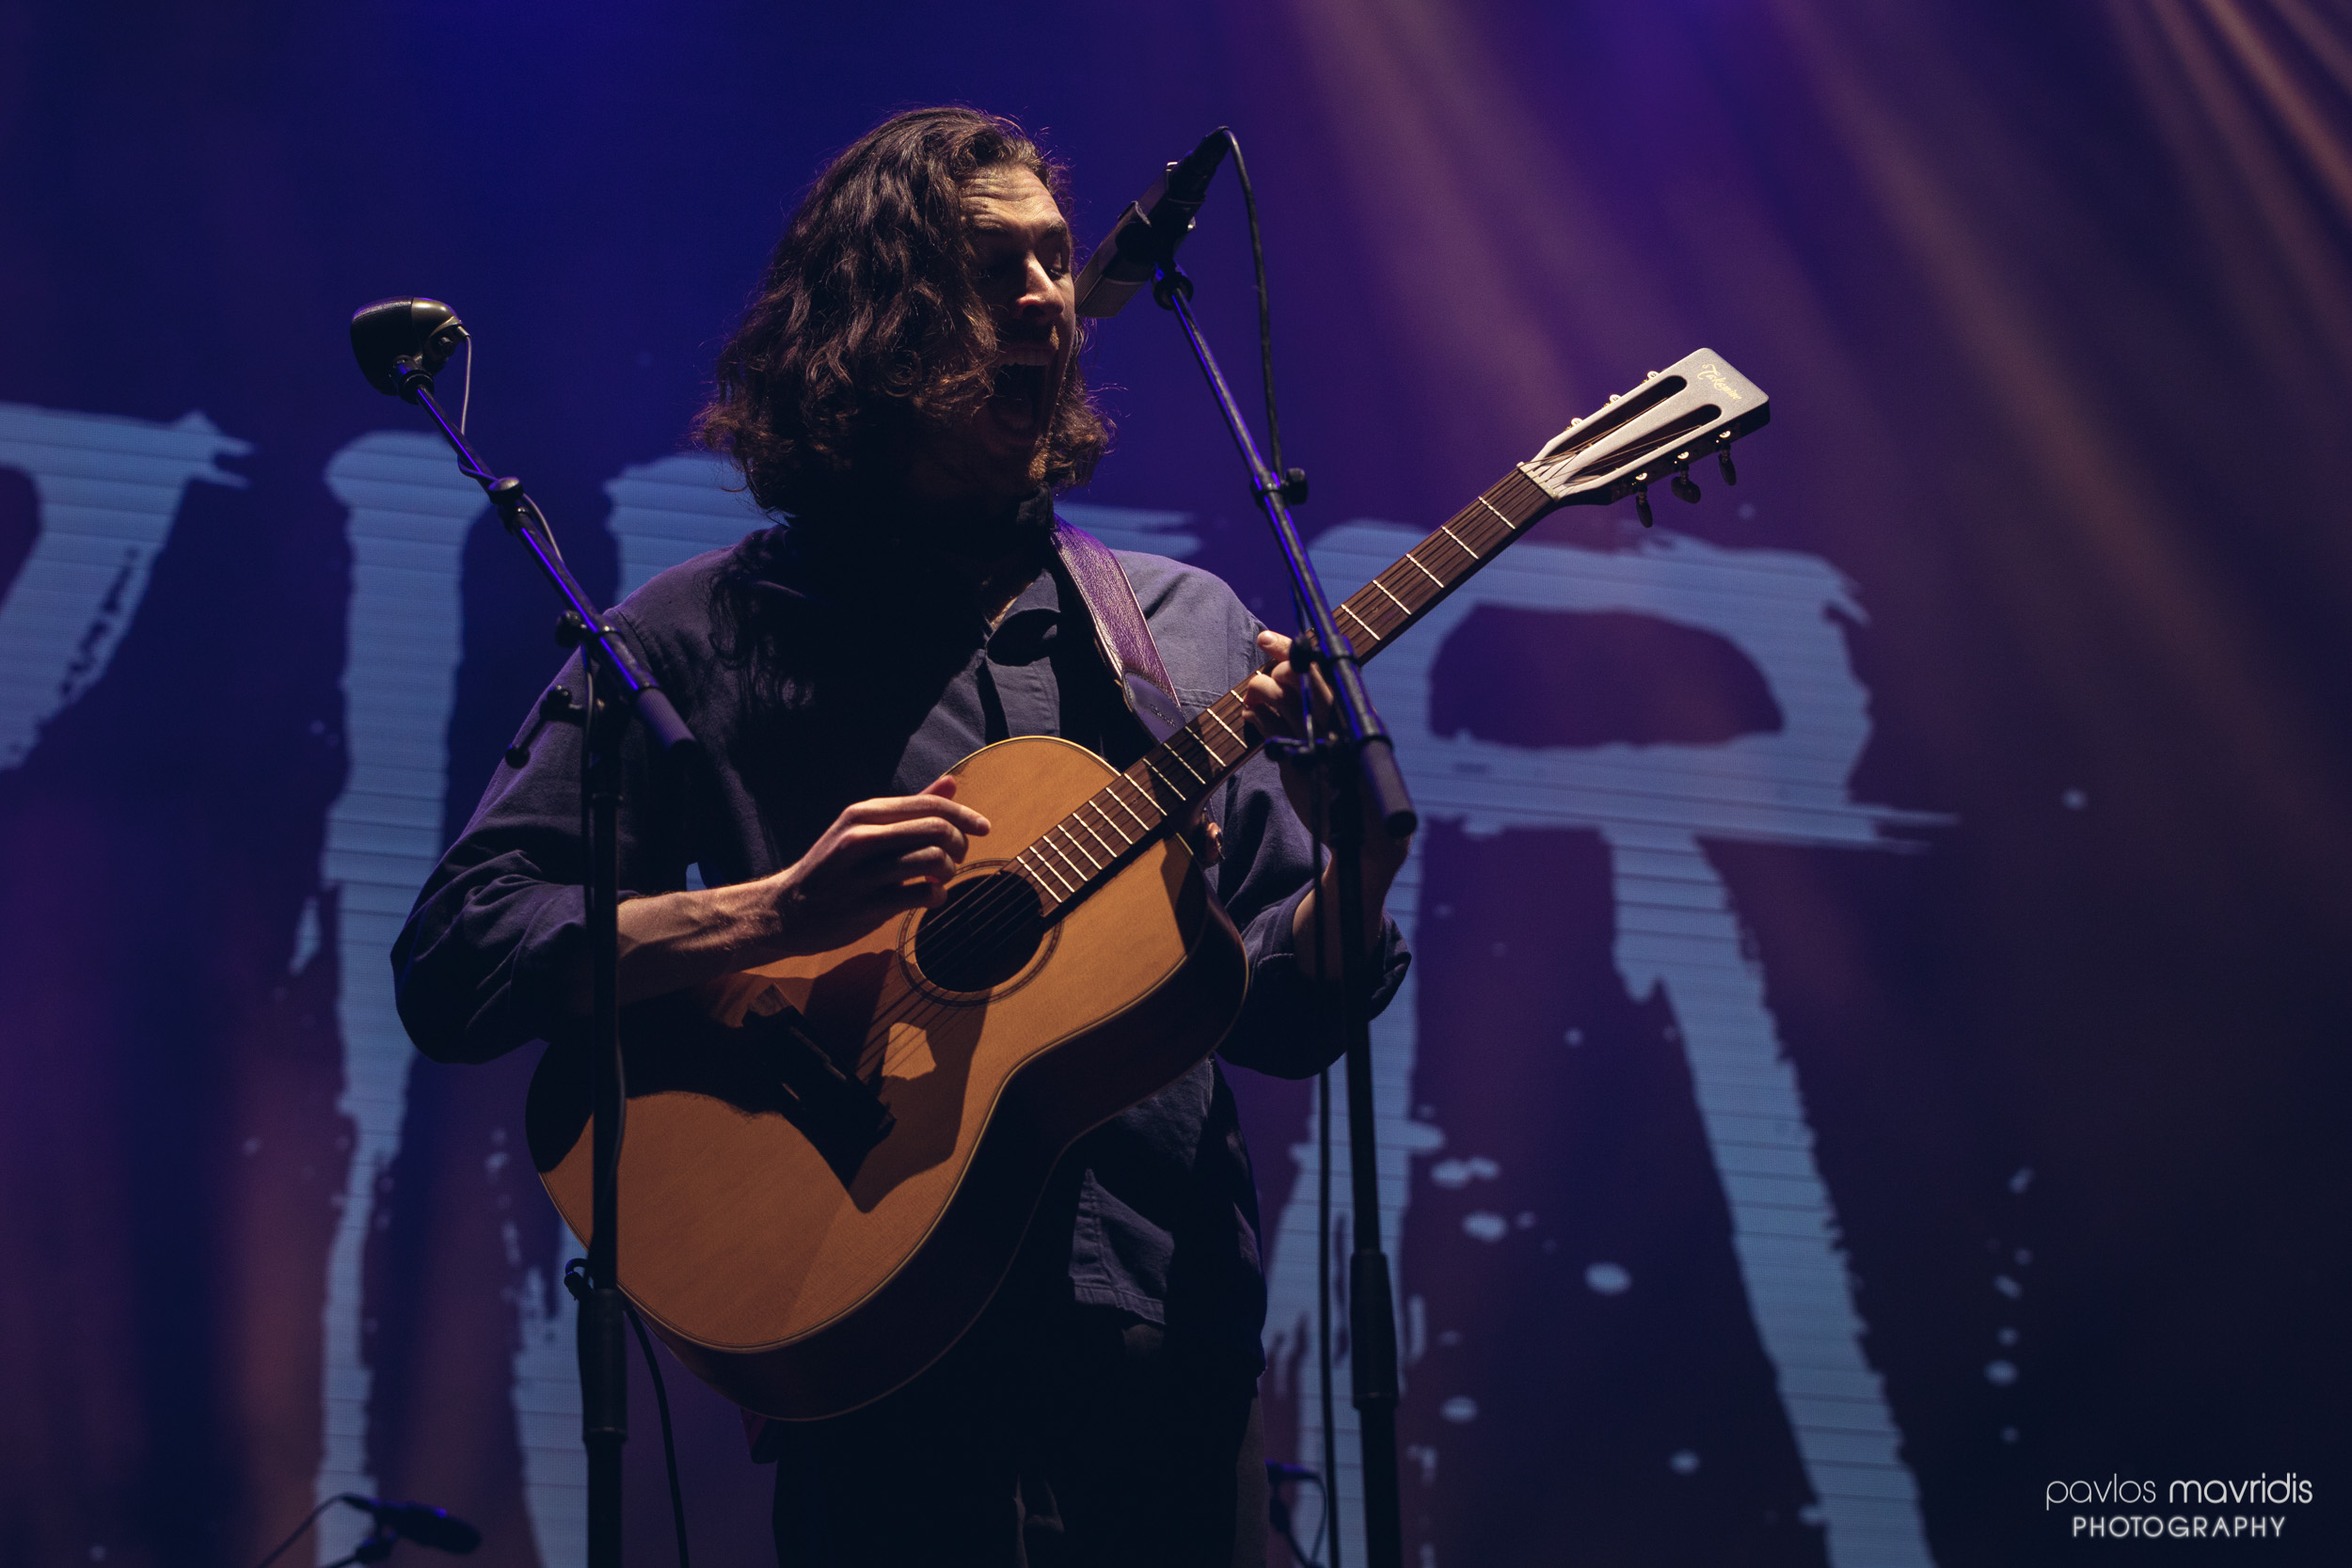 Hozier_Release Athens 2019_01_hires_web.jpg